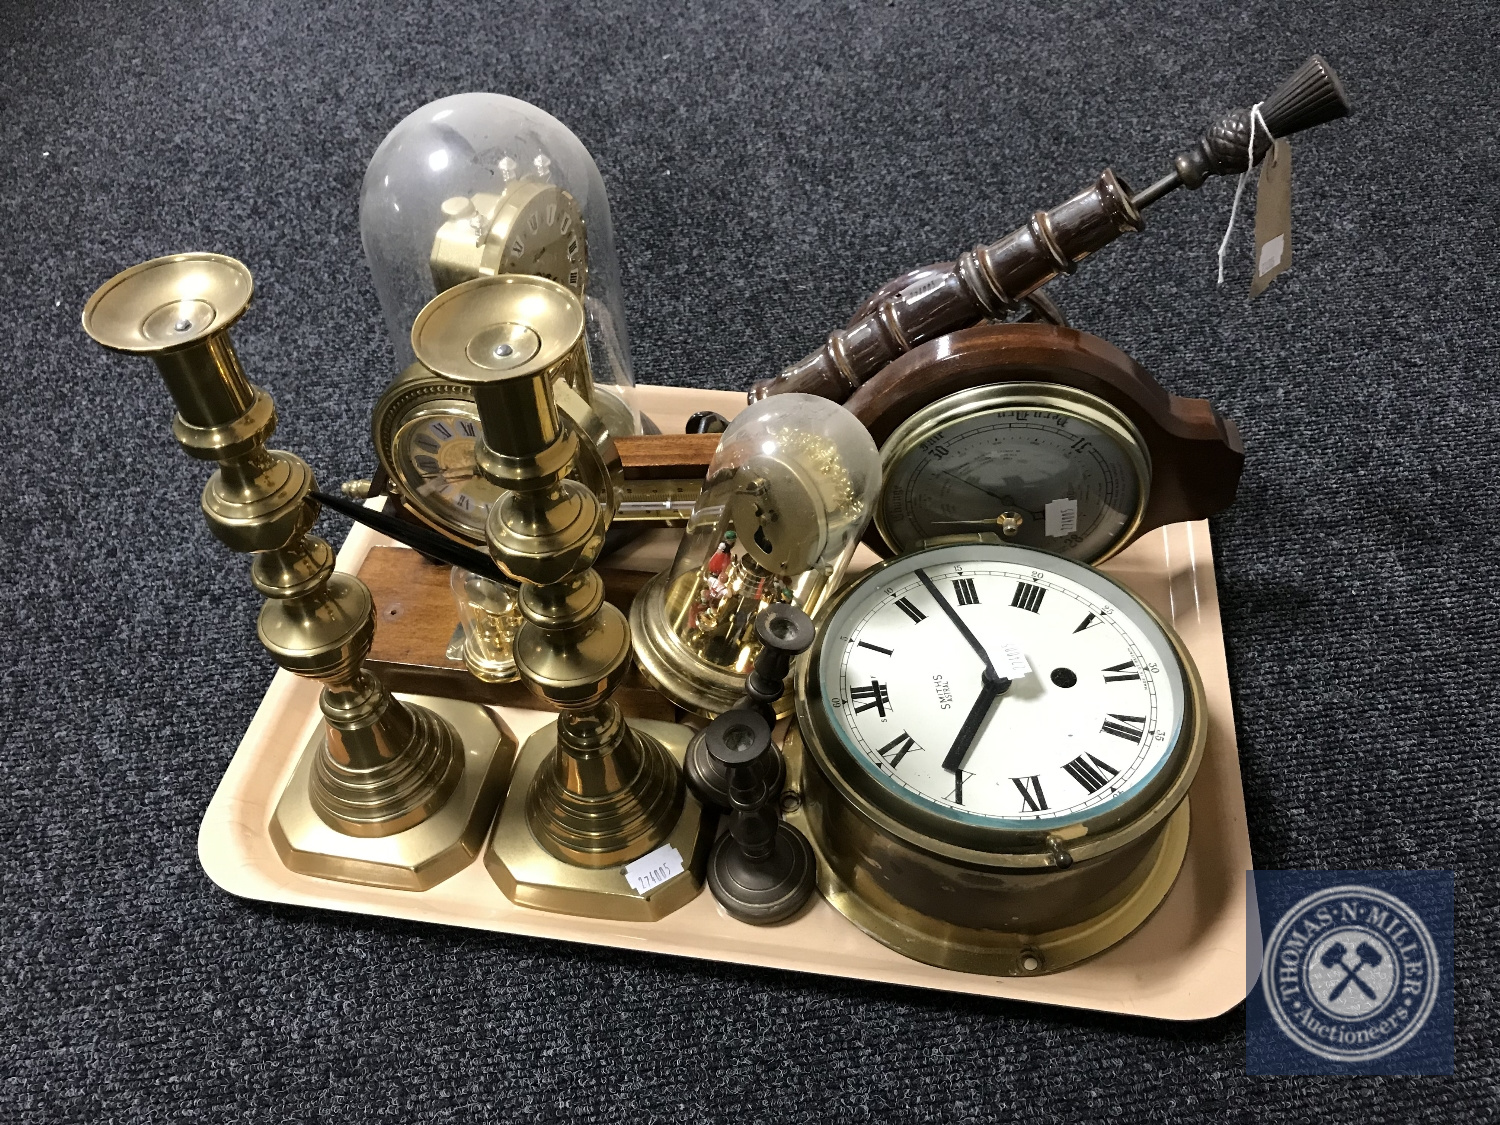 Lot 7 - A tray of brass candlesticks, Smiths clock, anniversary clock,